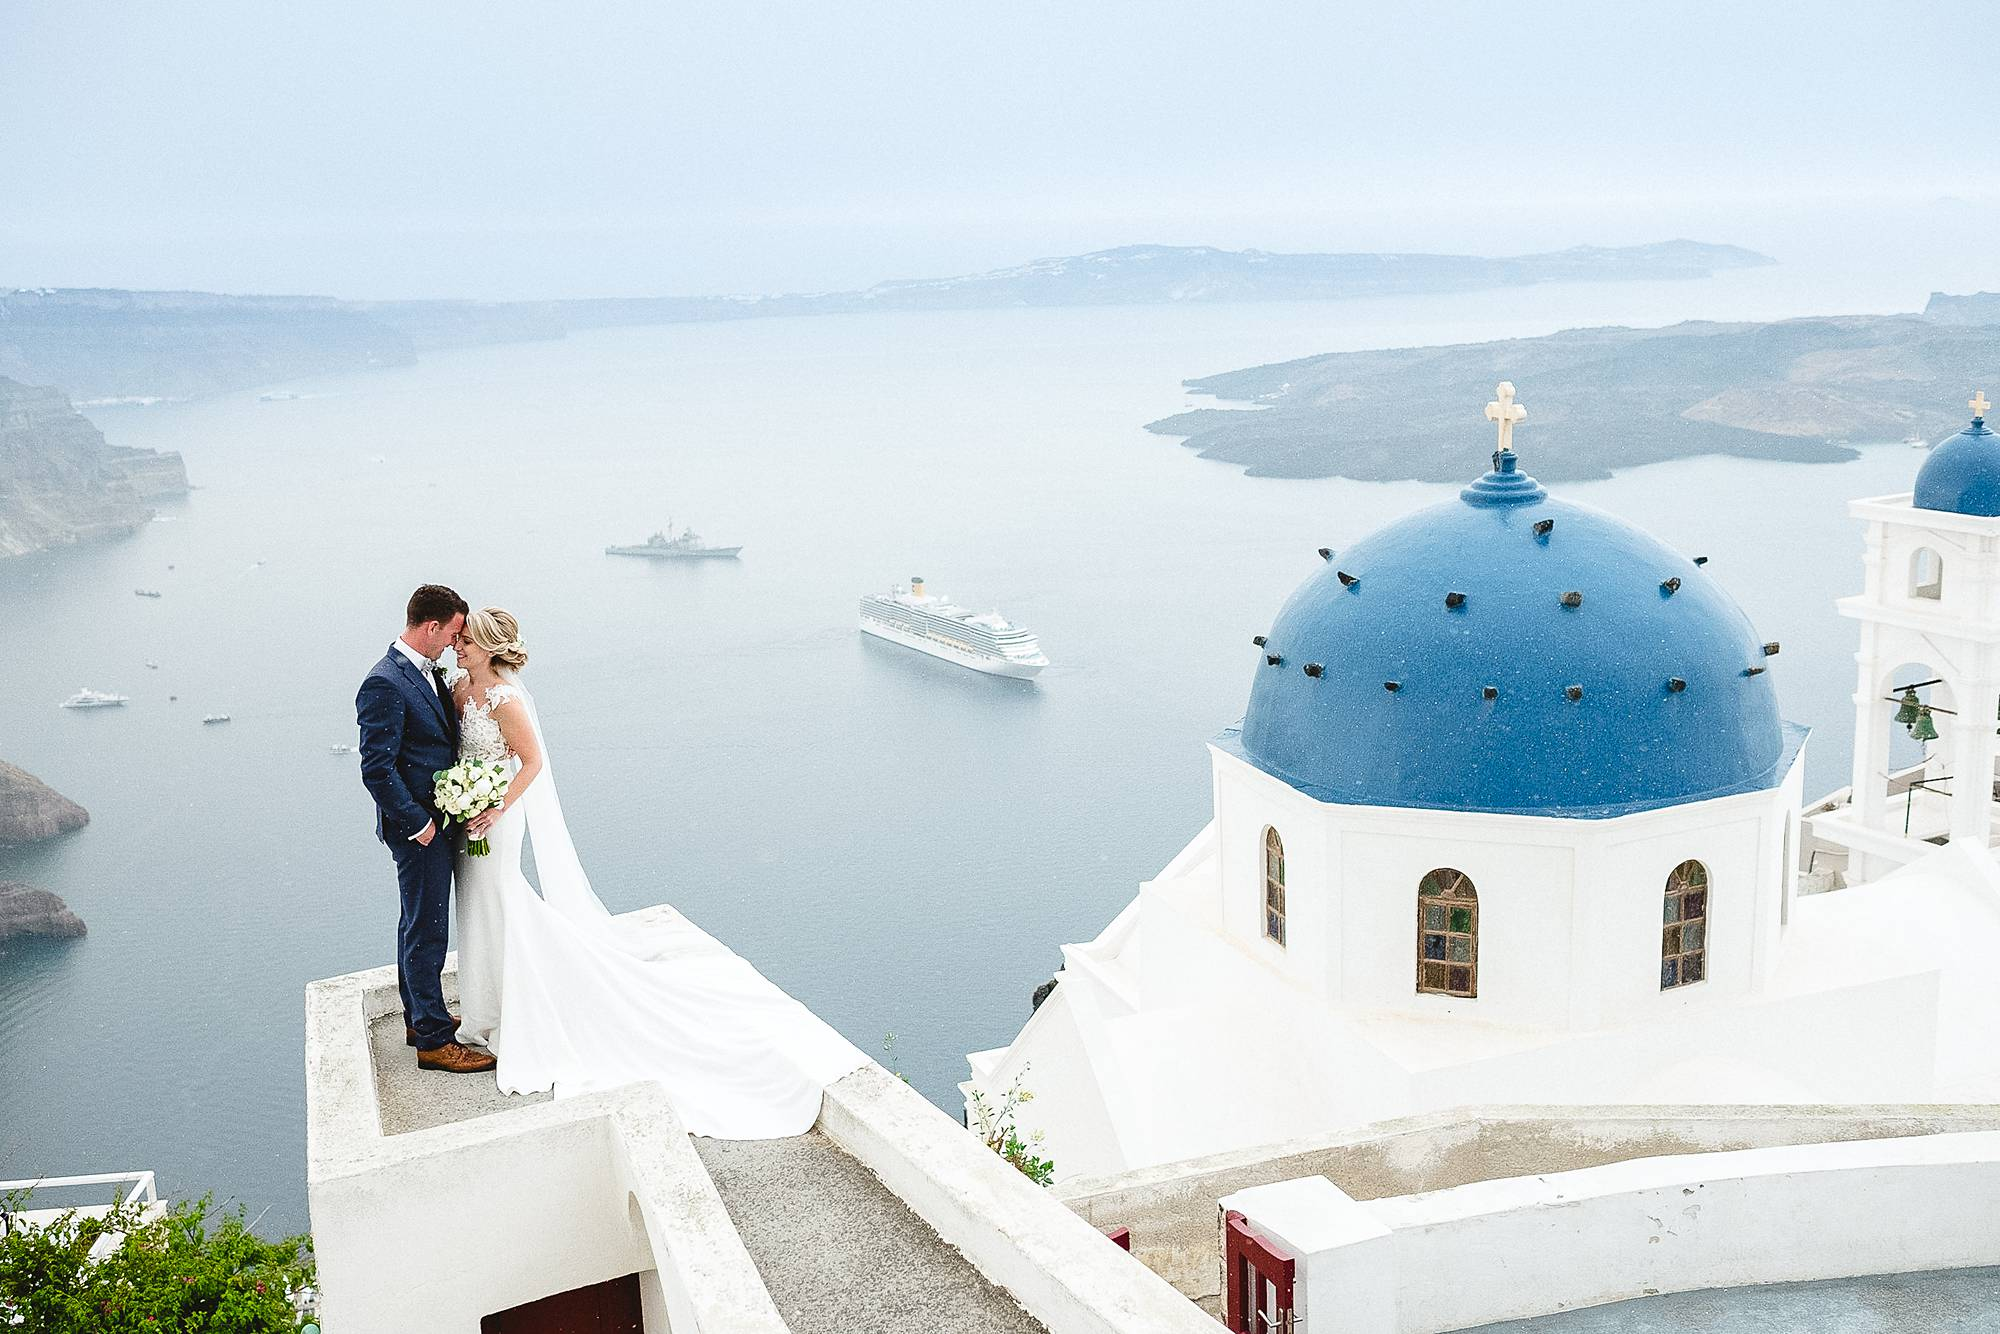 Santorini-Wedding-Photographer-89.jpg